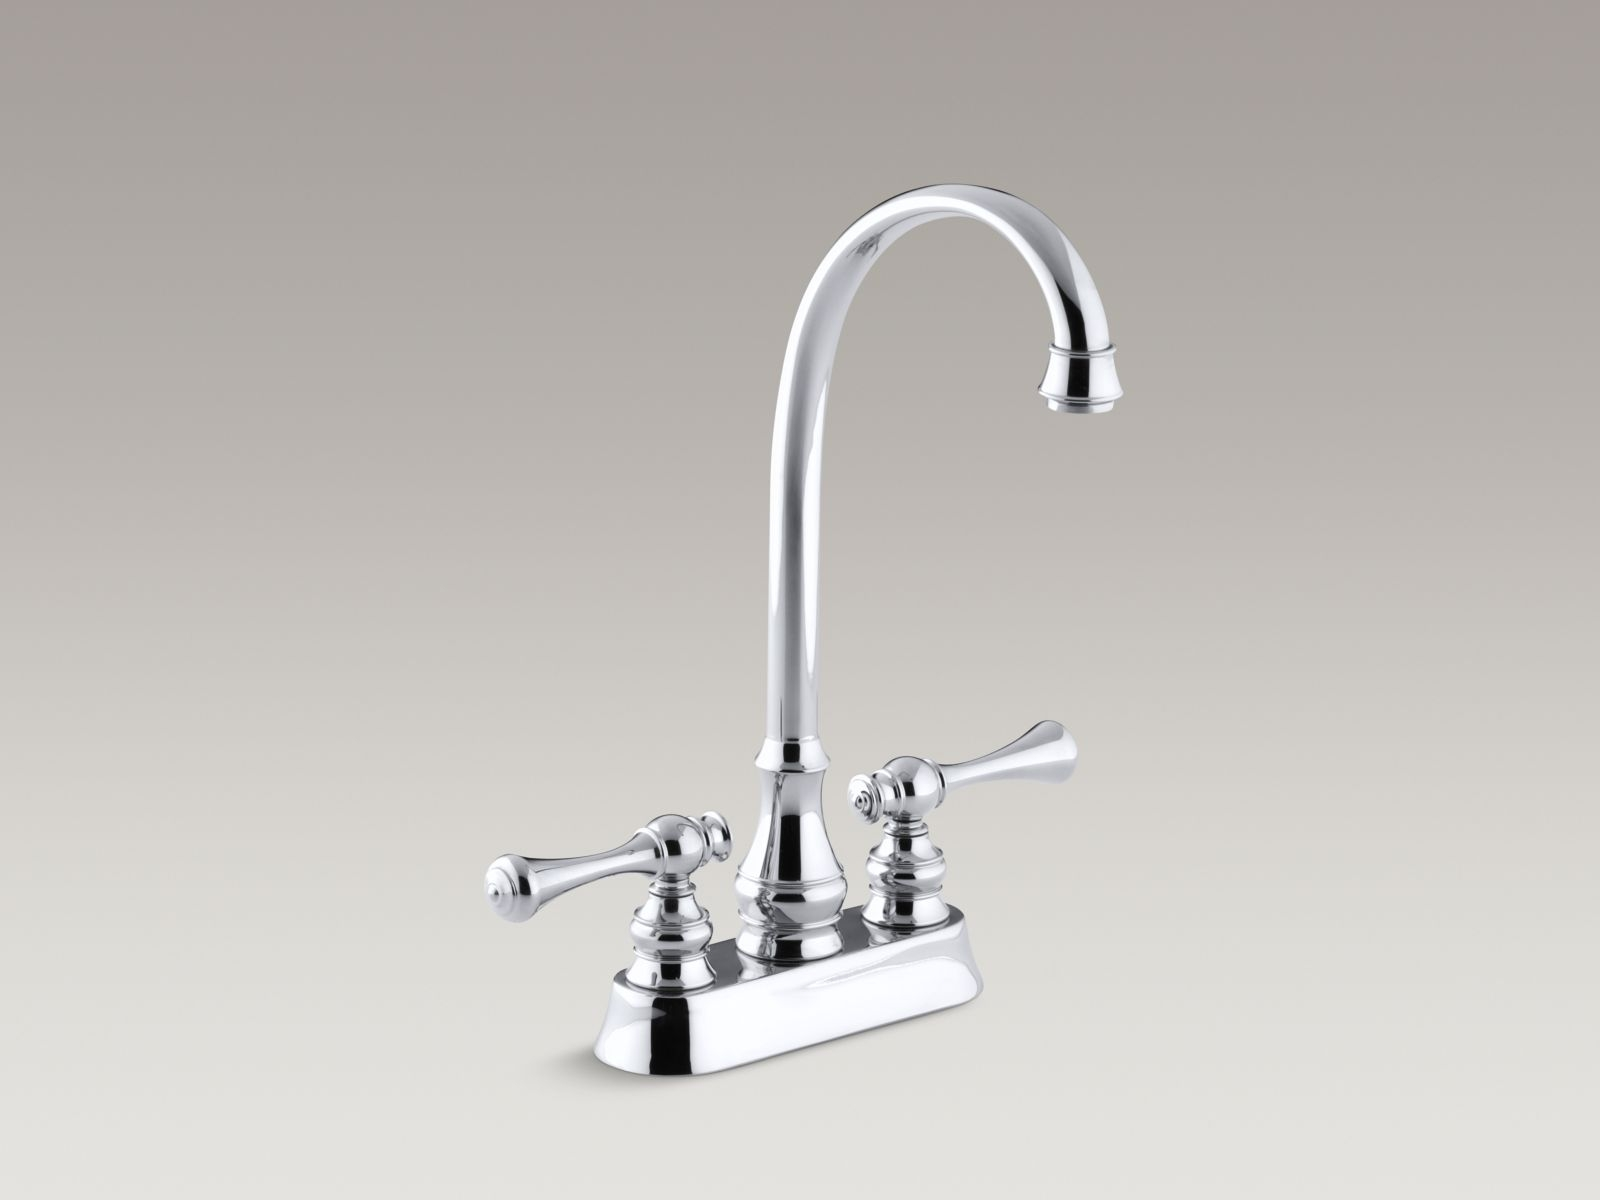 Ideas, kohler bar sink and faucet kohler bar sink and faucet buyplumbing category bar prep faucet 1600 x 1200 1  .